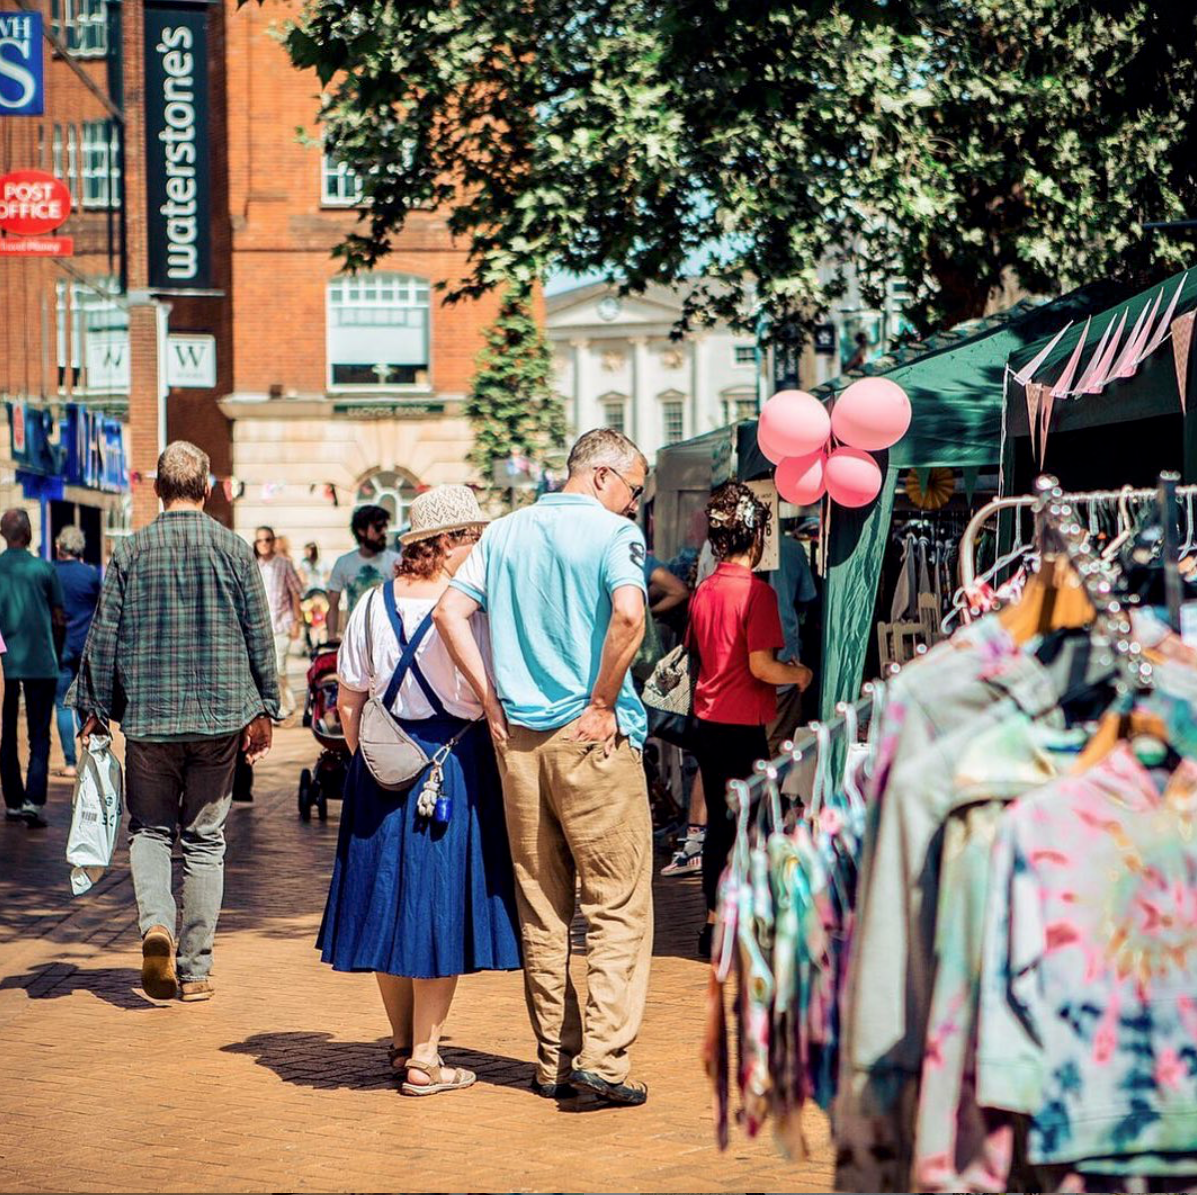 The Chelmsford Pop-up Market